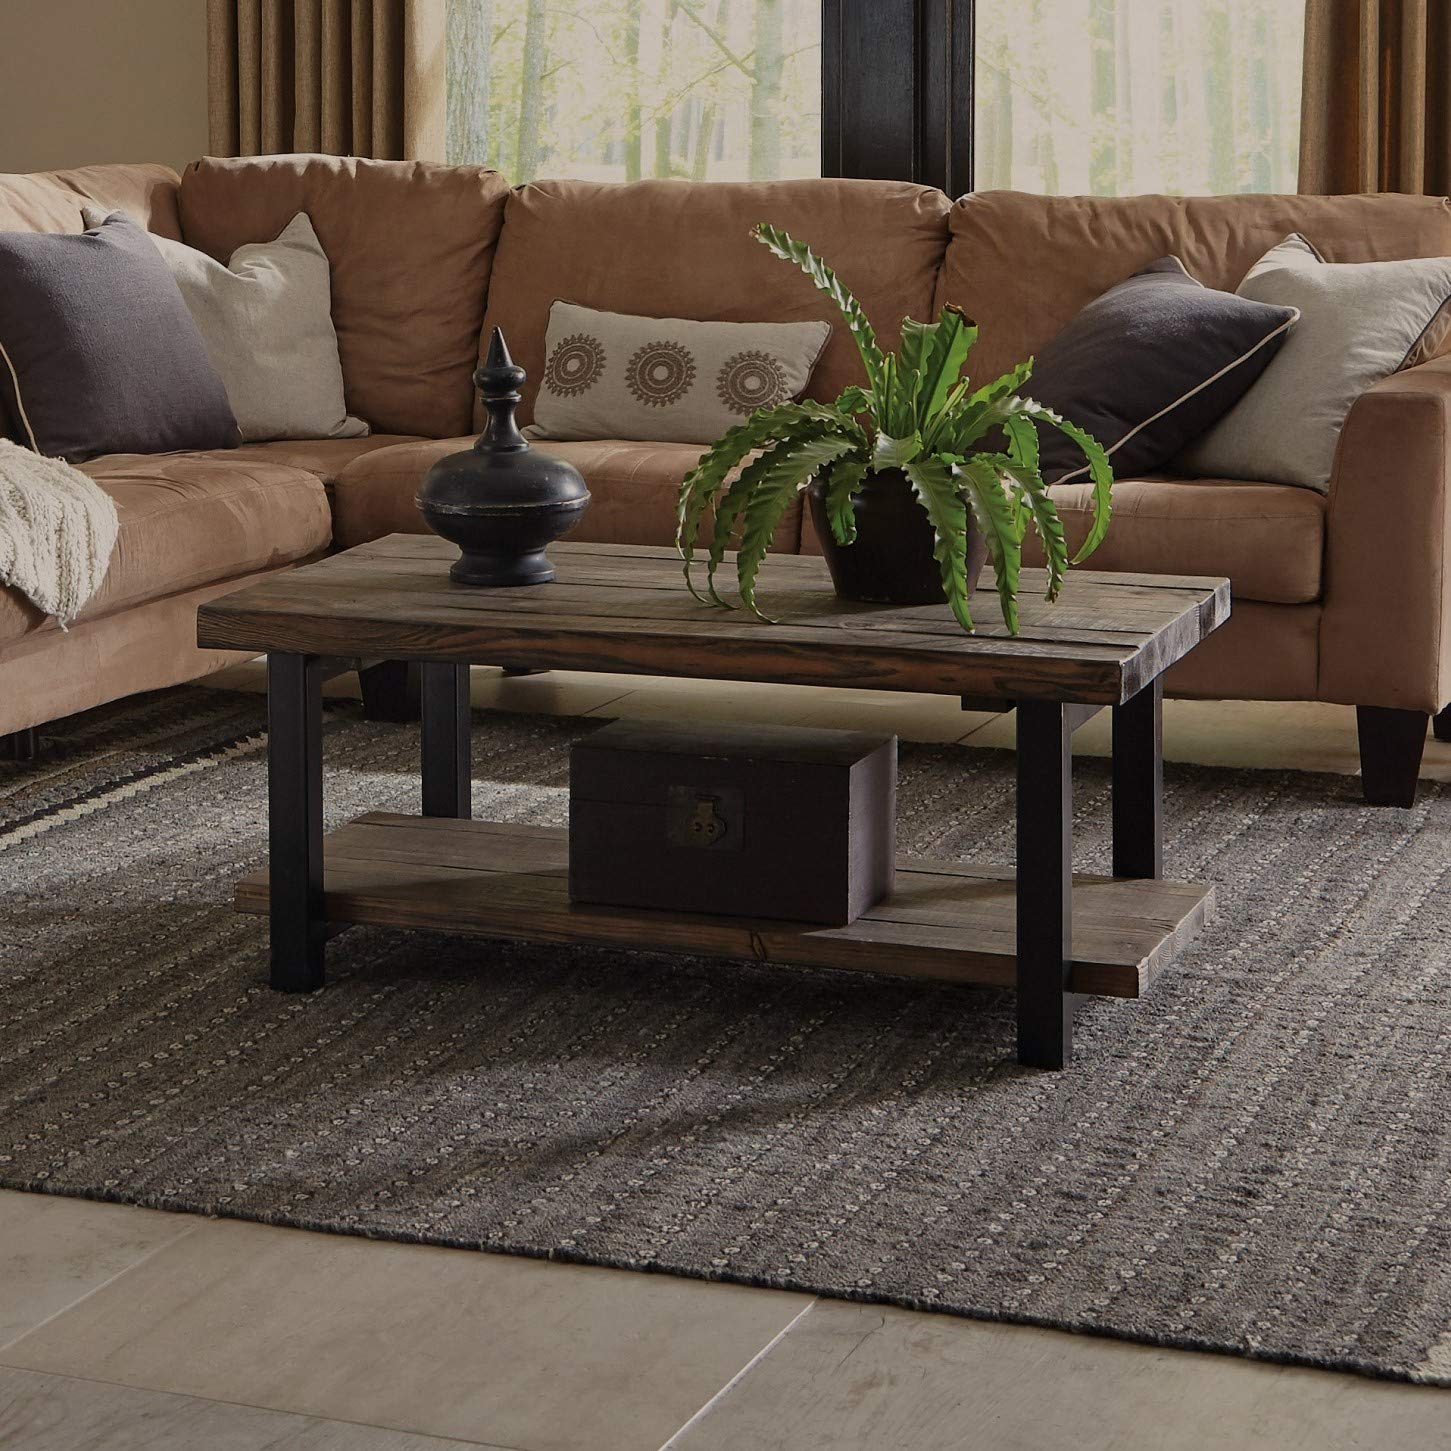 Alaterre Sonoma Rustic Natural Coffee Table, Brown, 42'' by Alaterre